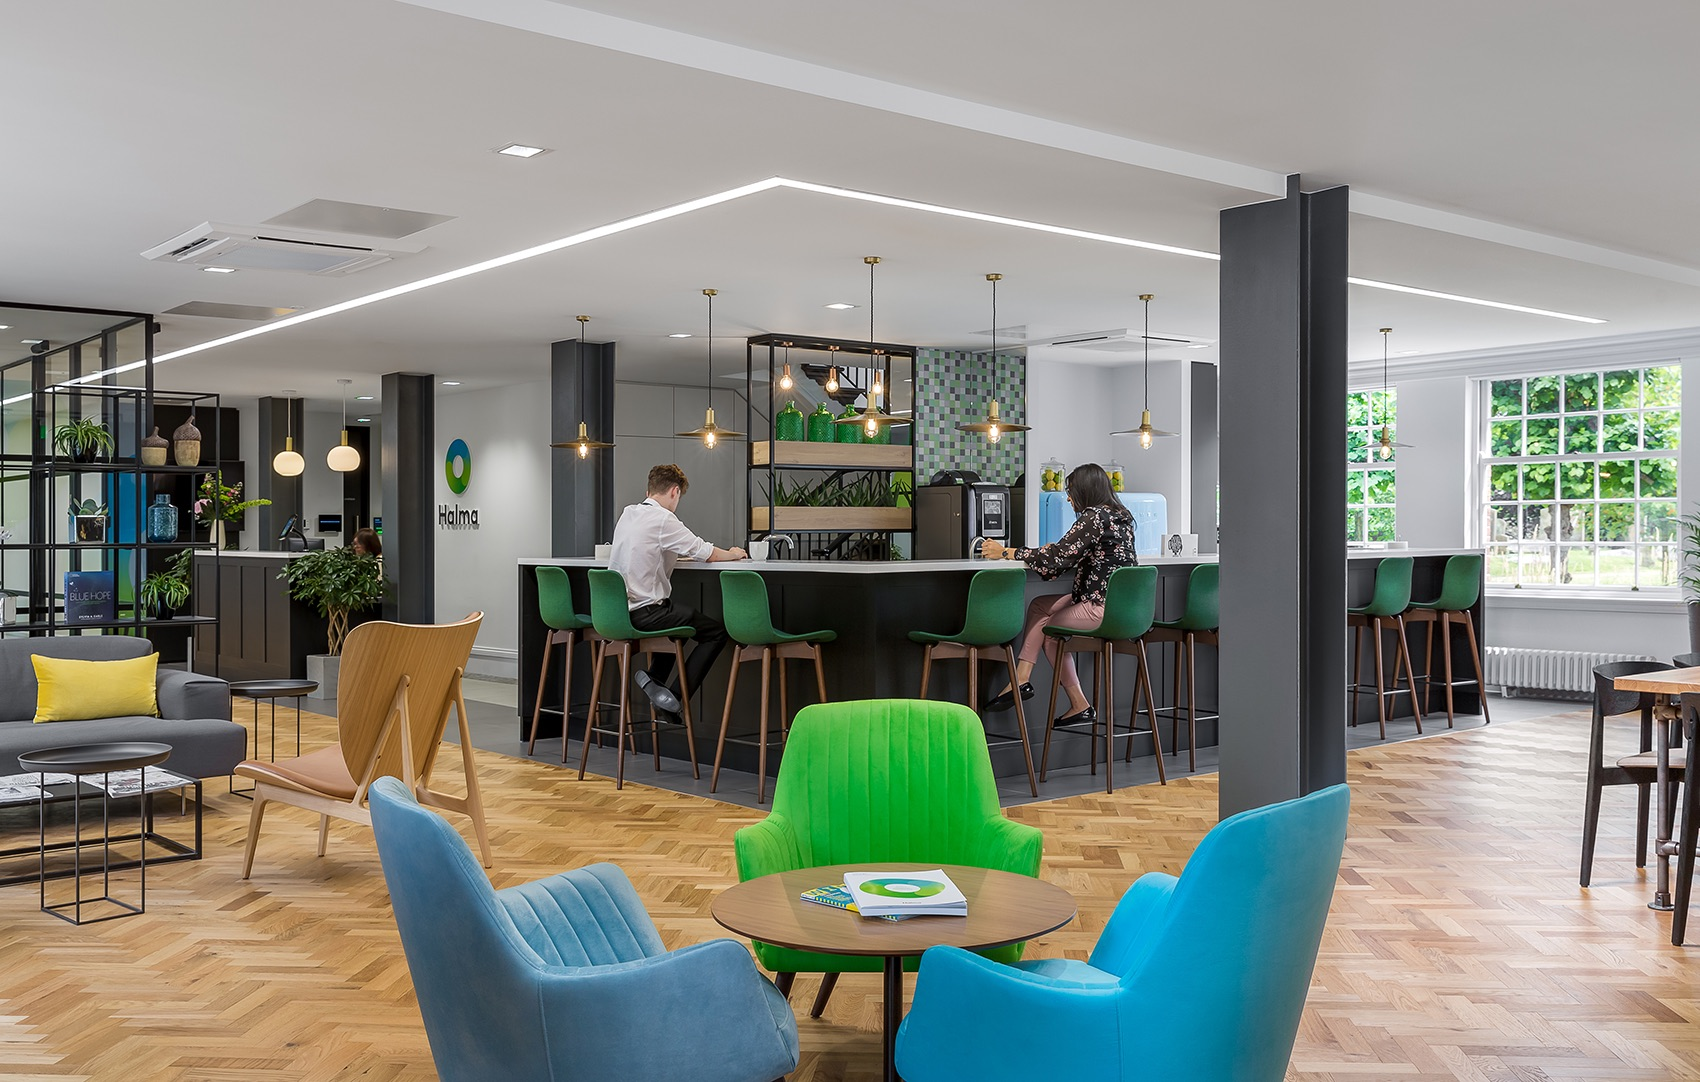 A Look Inside Halma's New Amersham Office